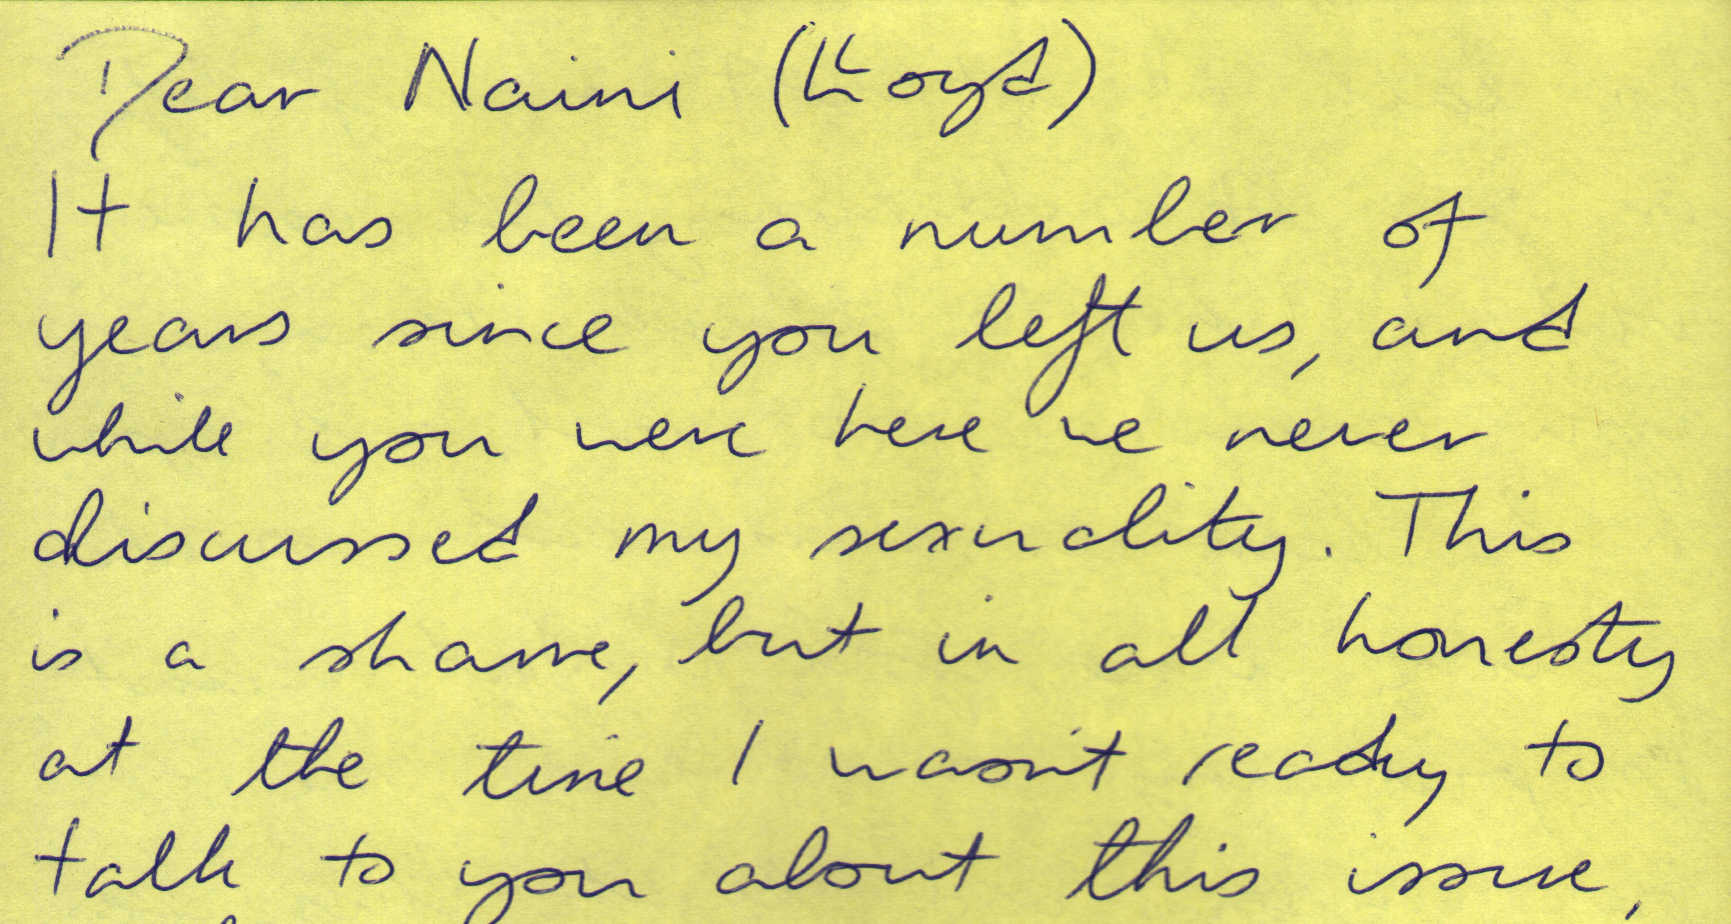 Letter to Naini Lloyd from anonymous